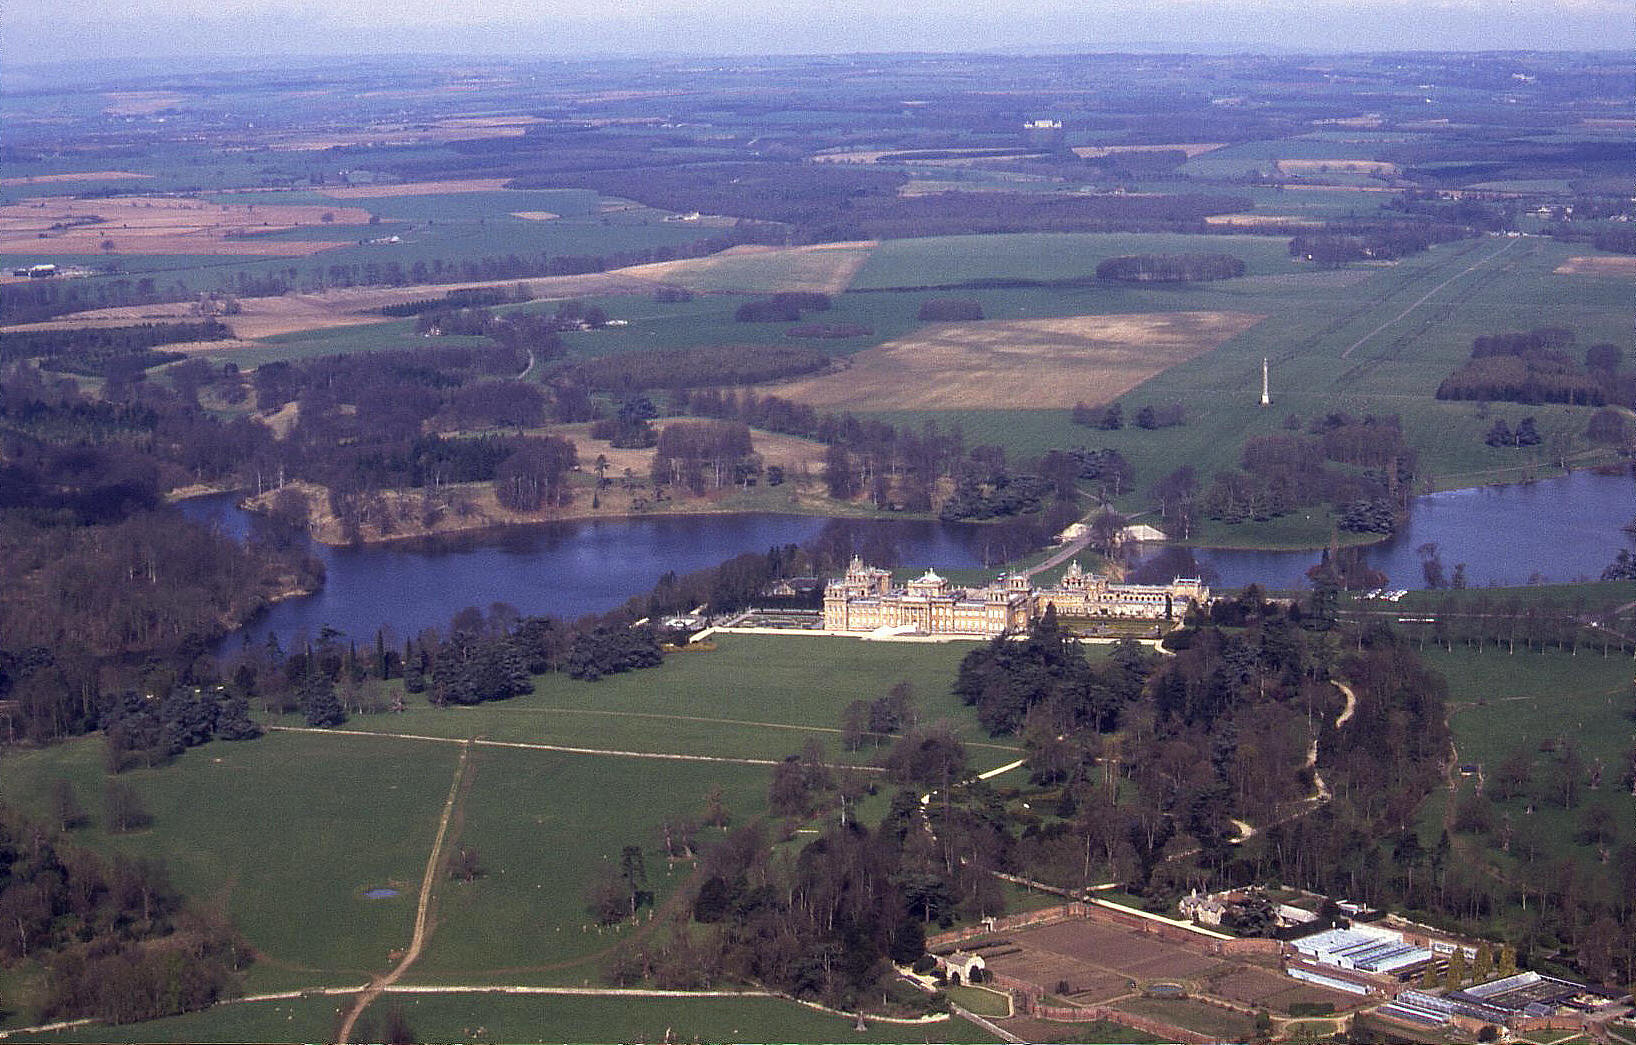 Blenheim Palace & park, Oxfordshire, early 1990s